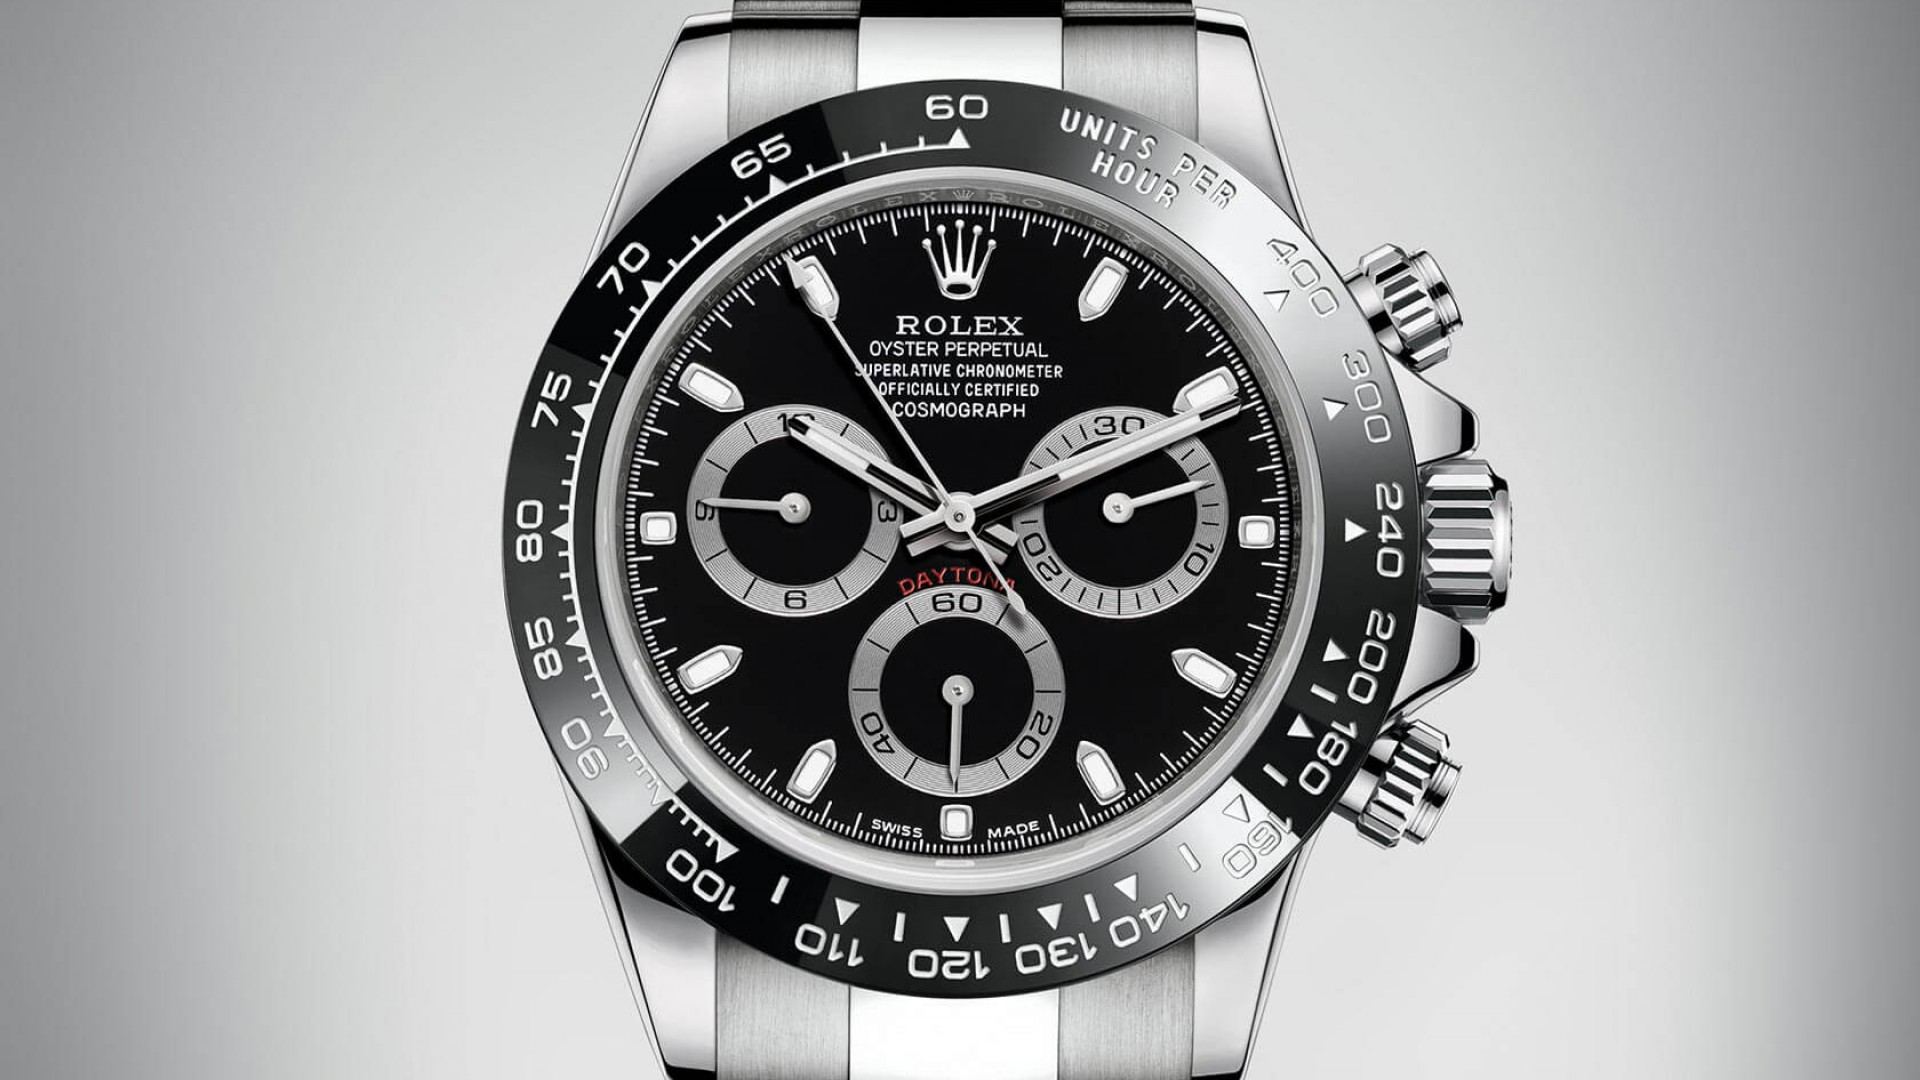 Six rolex watches to help you turn a profit square mile for Rolex watch